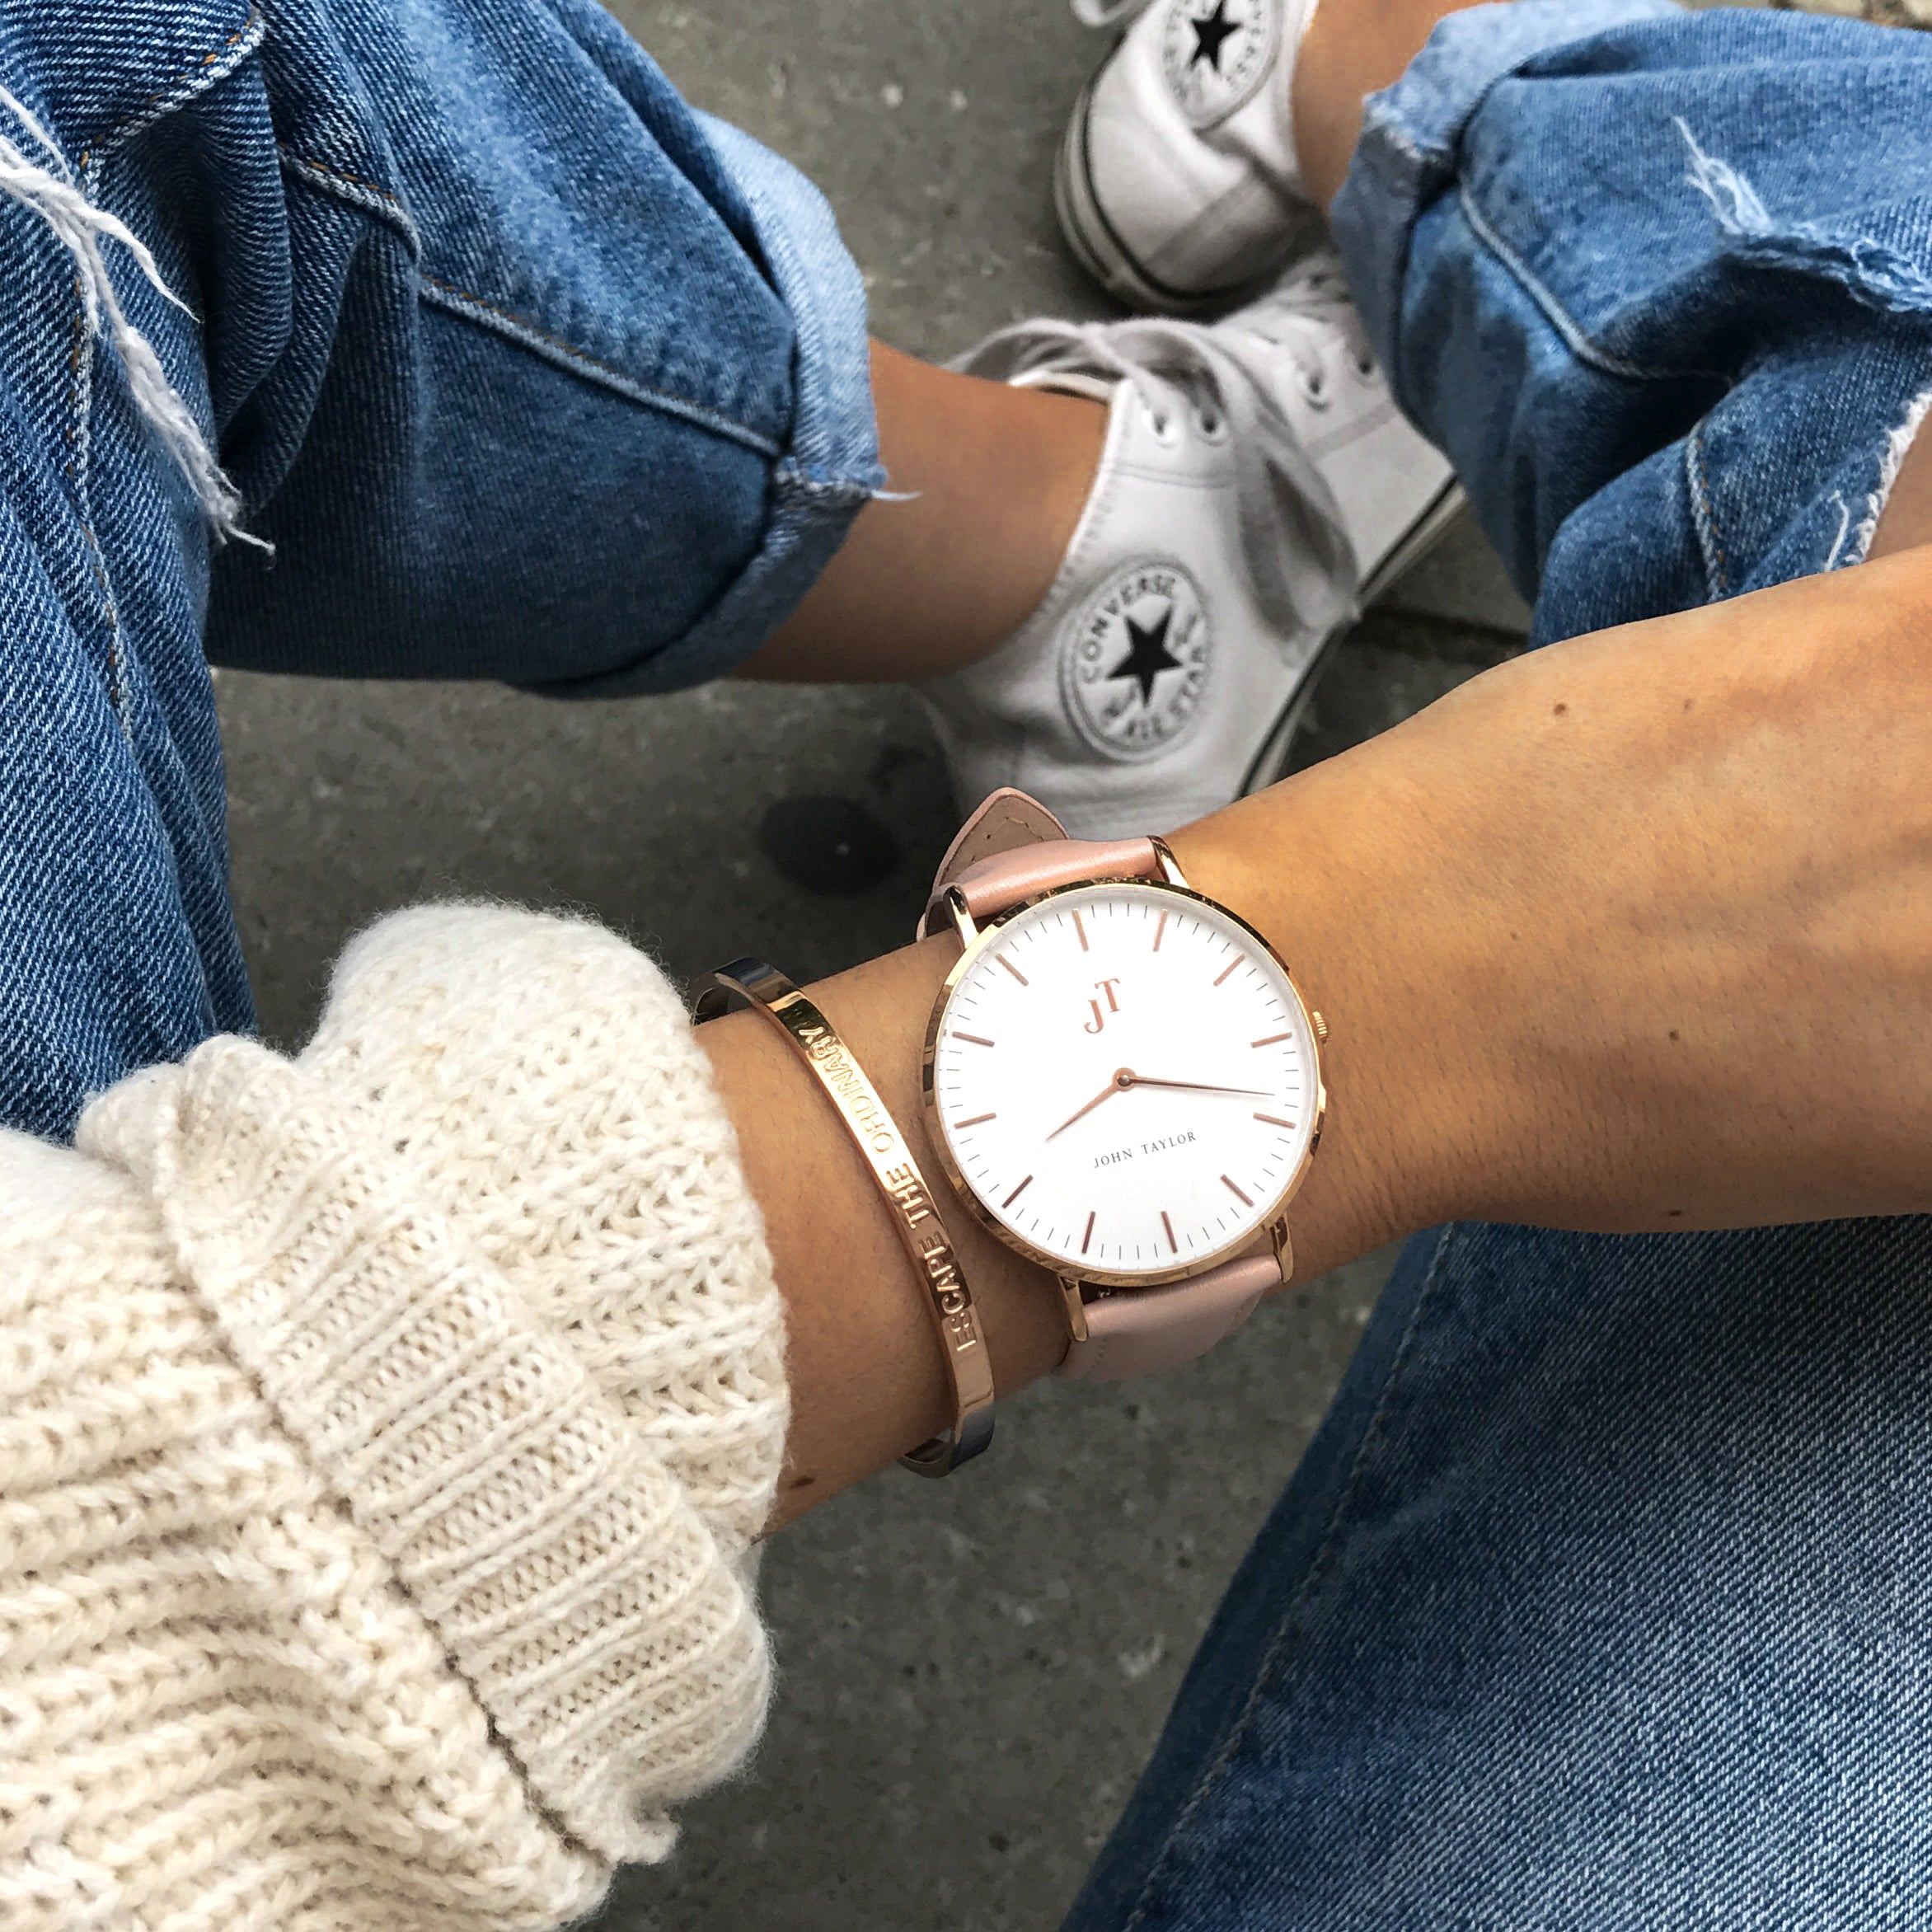 r december nylon would watch much official thread watches more tuesday the comments jeans shirtsleeve check comfortably nato wrist a for lets than fit under strap